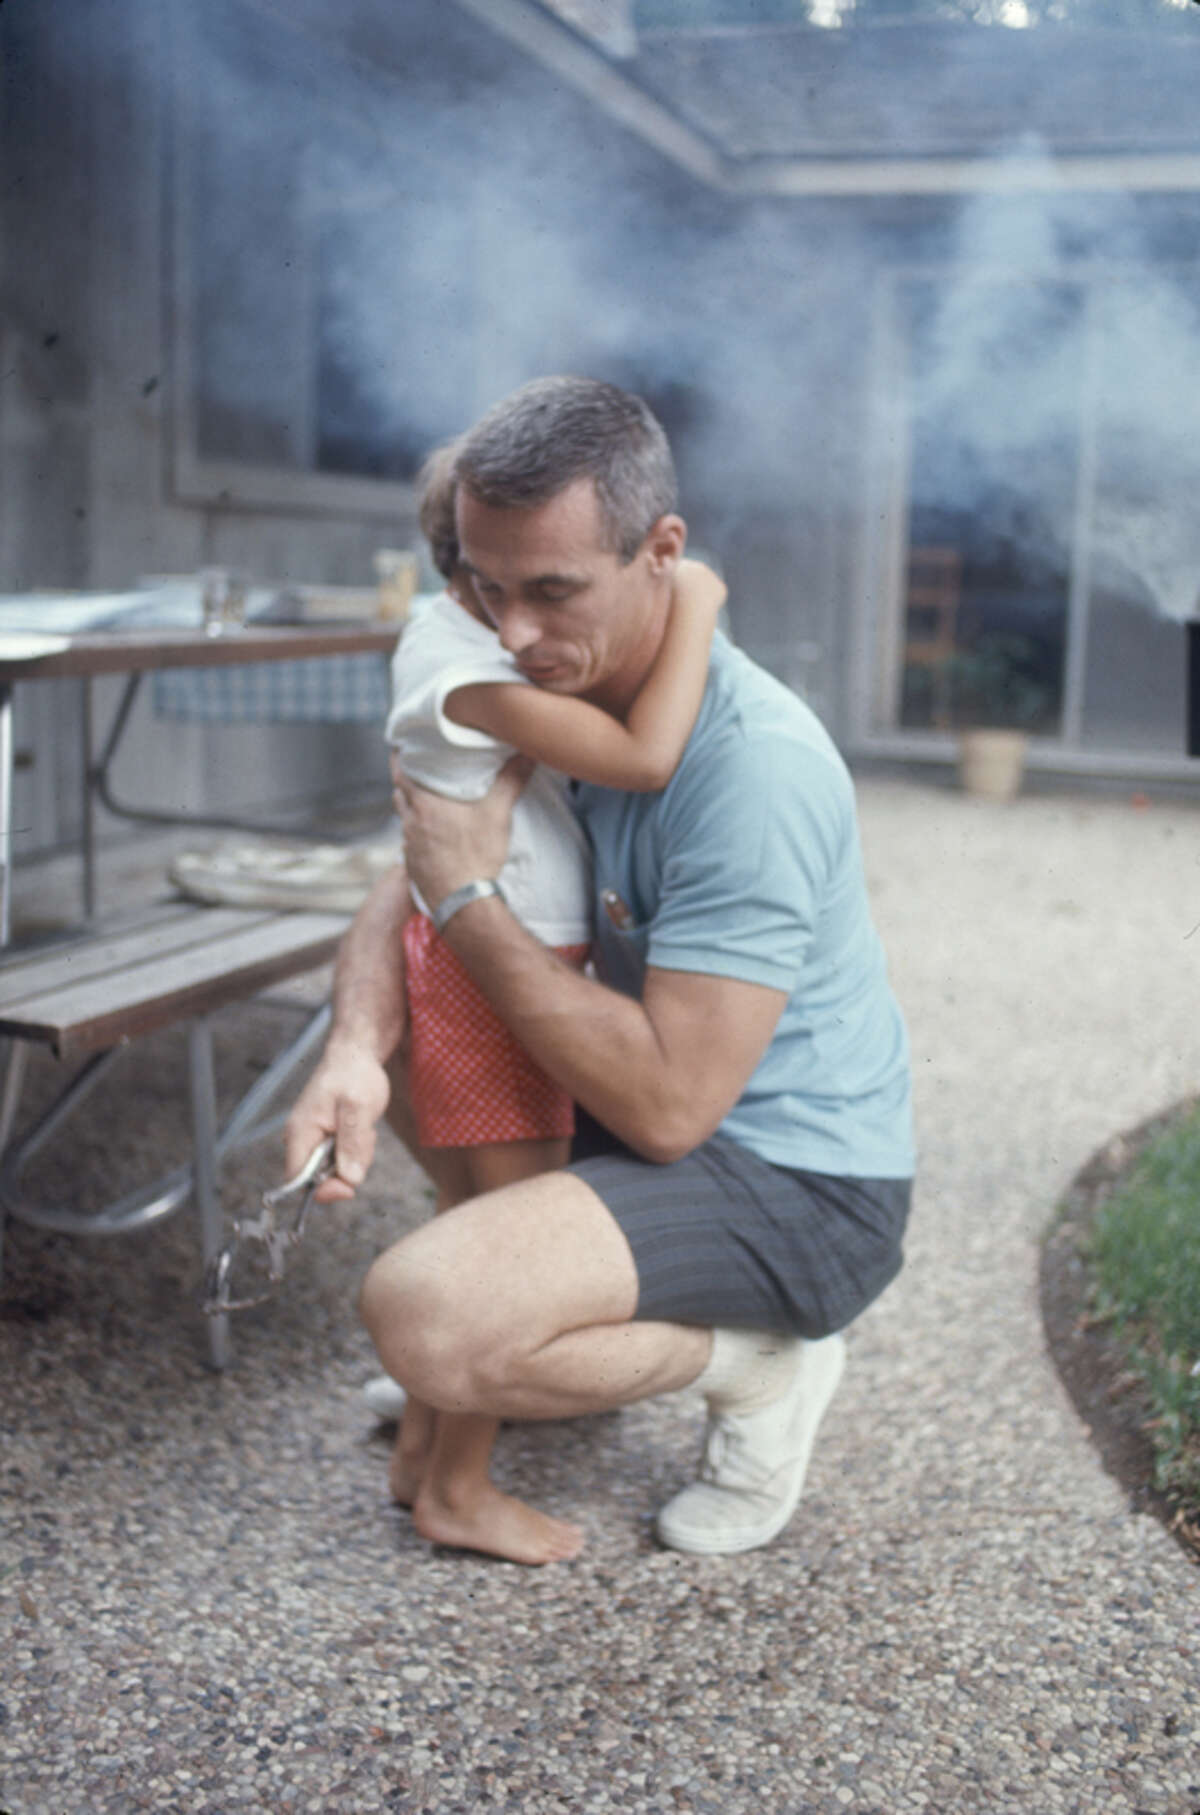 PHOTOS: Early astronauts at home with wither families in Houston American NASA astronaut Eugene Cernan crouches down to hug his daughter, Tracy. The pair were at a March 1969 barbecue at the Houston home of fellow astronaut Jim Young.